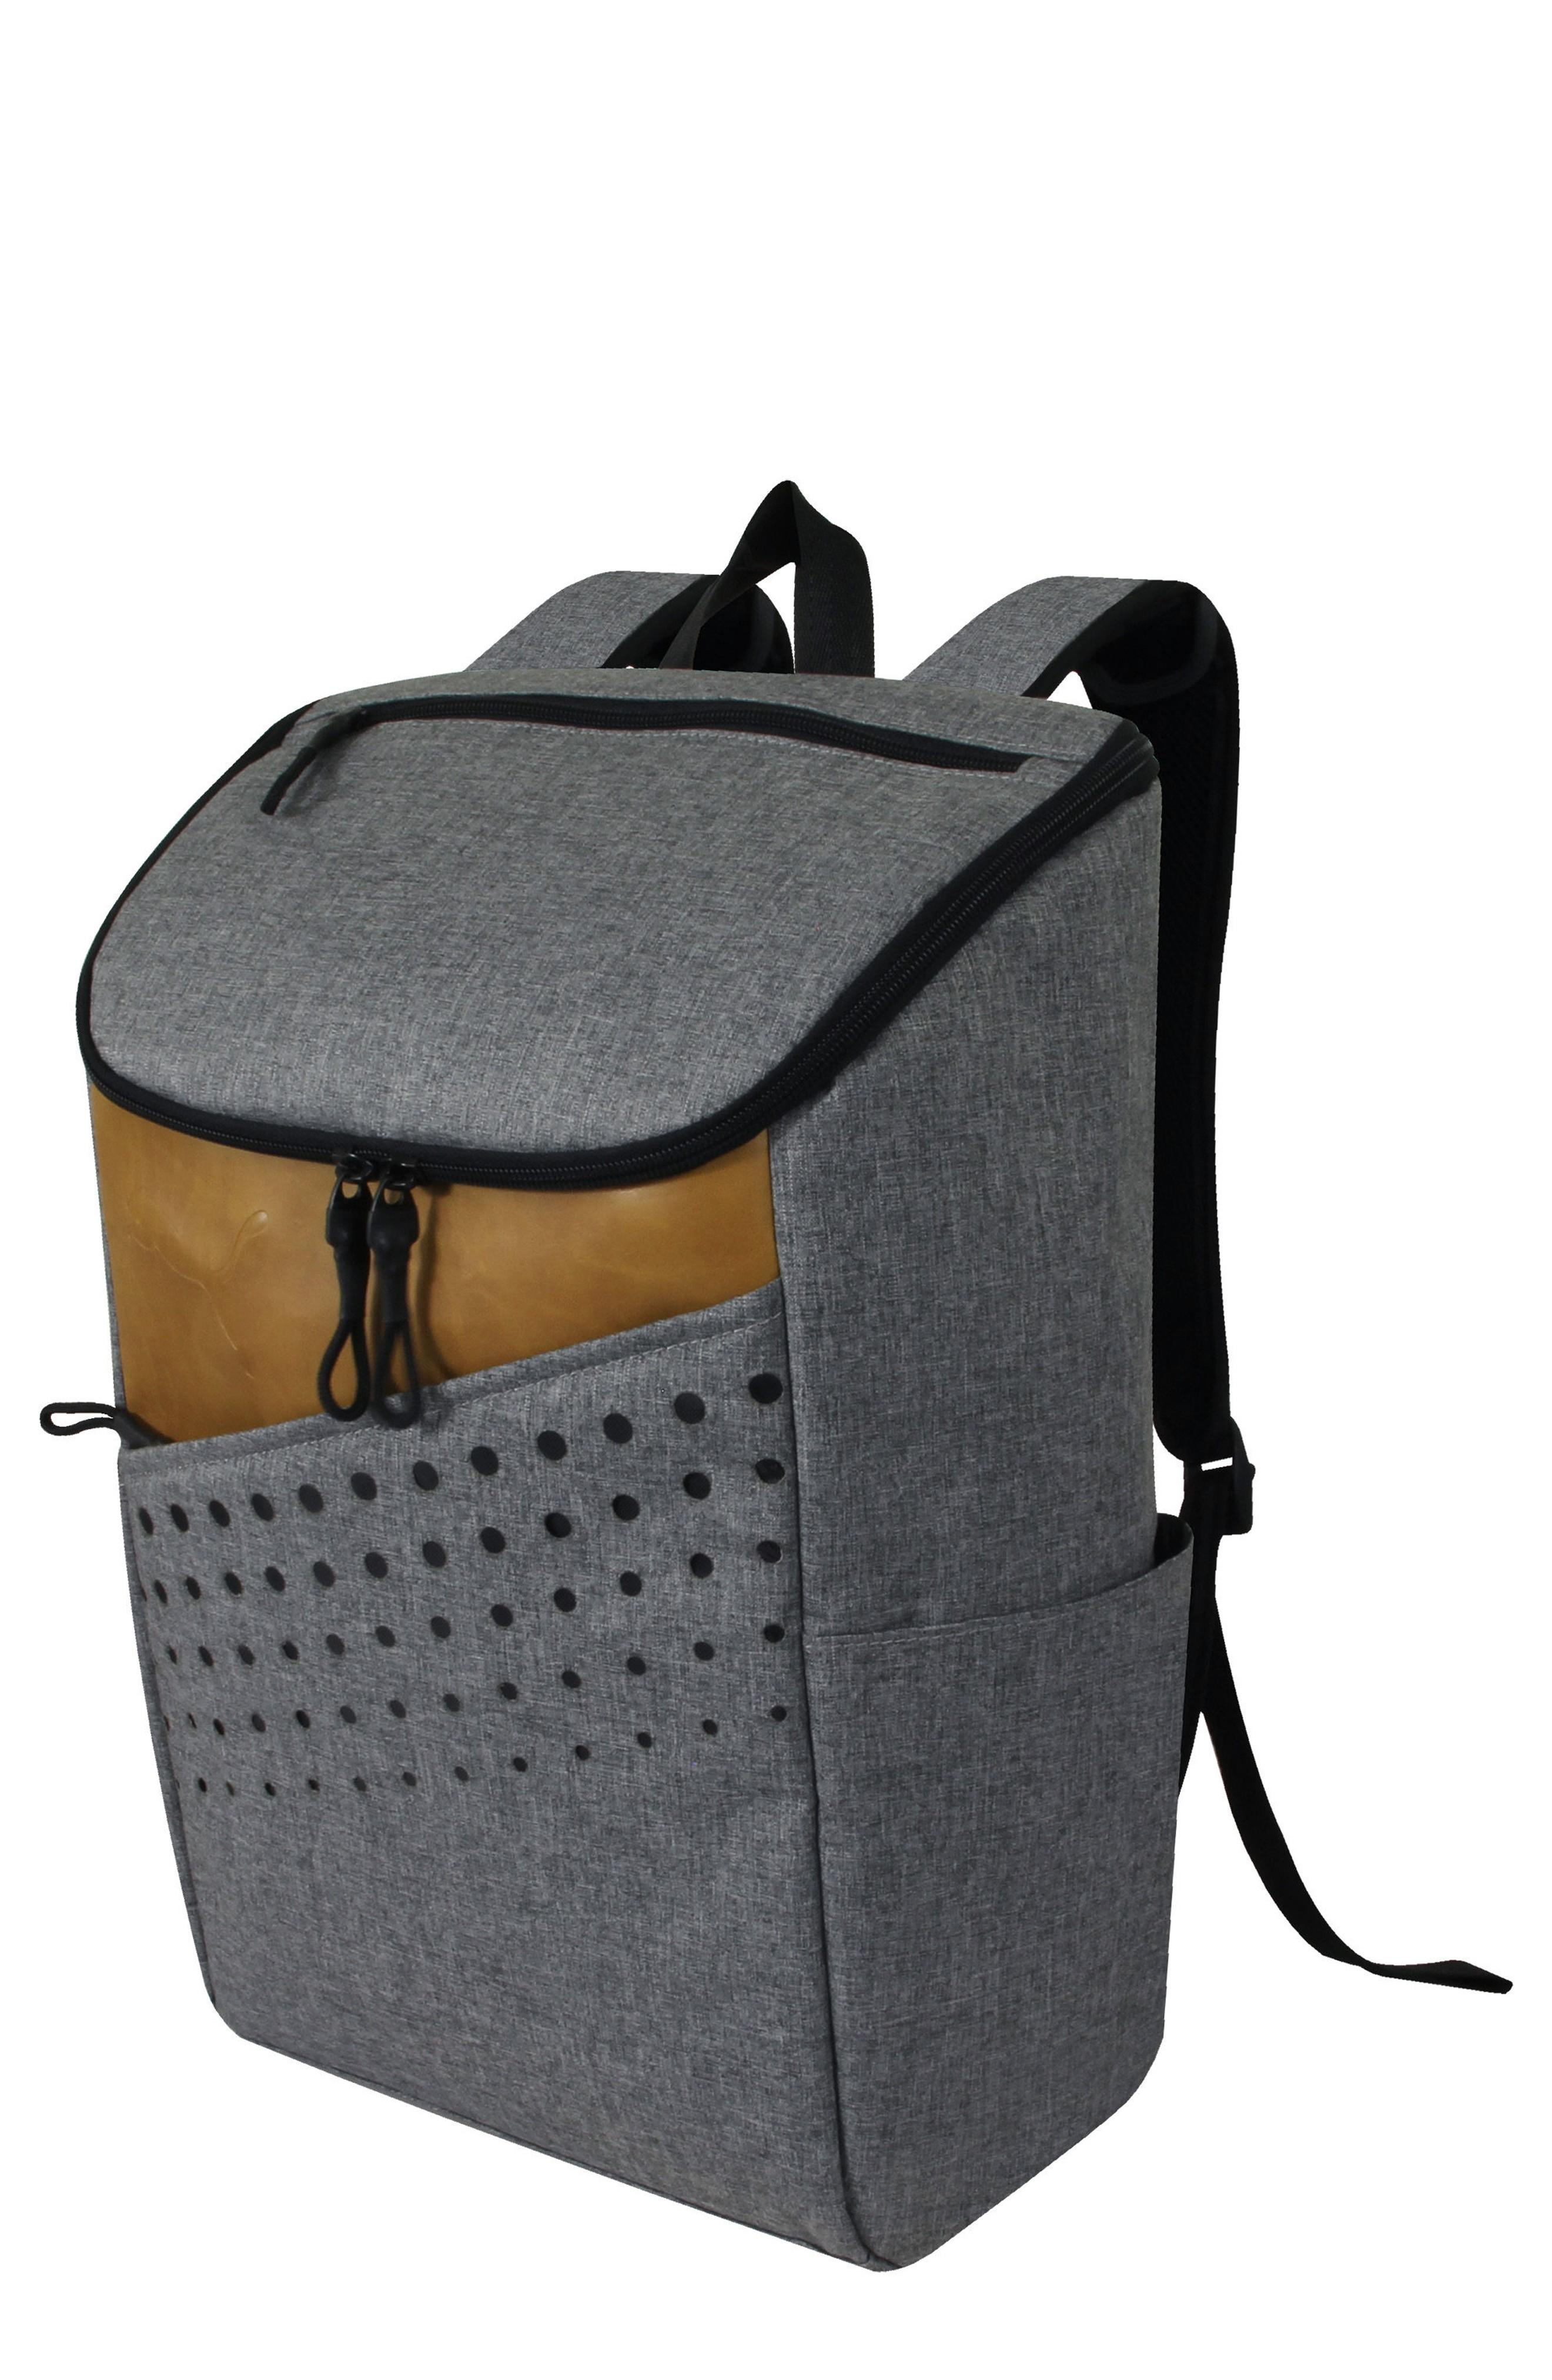 6ce6604f5e A modern backpack designed with a squared-off U-zip top opening allows you  to easily stash